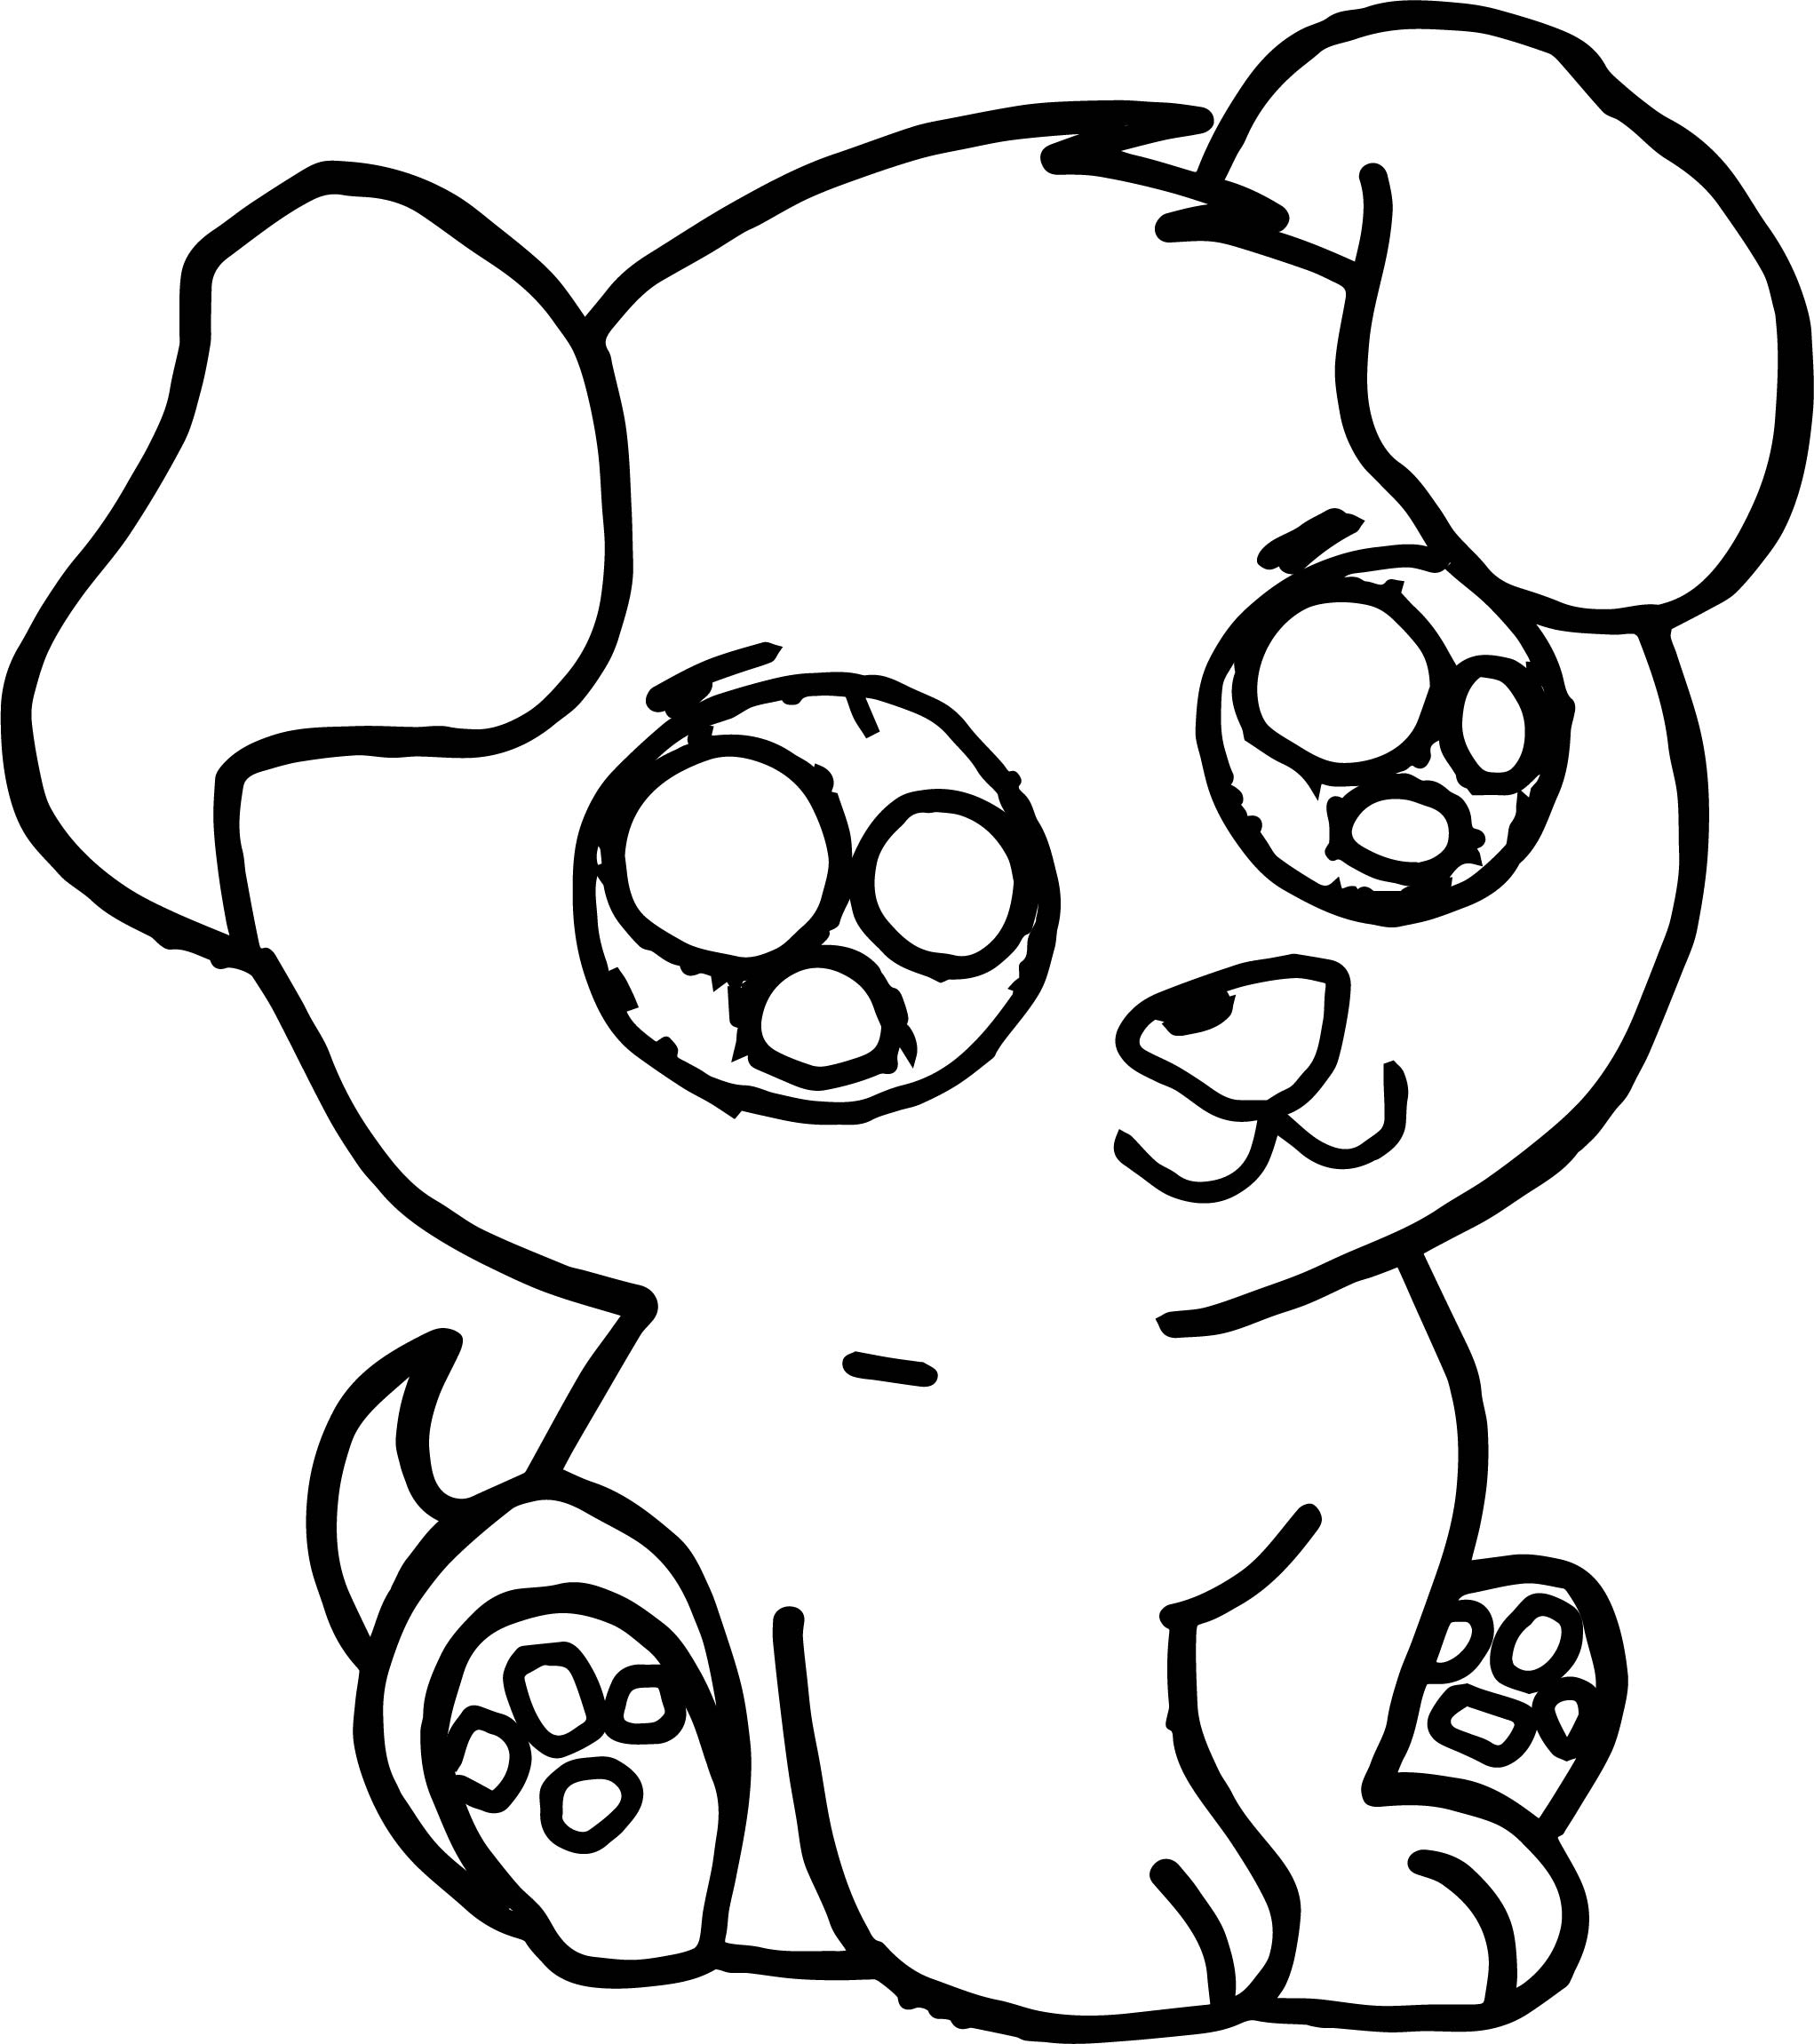 2042x2301 Improved Picture Of A Dog To Color Dogs Coloring Pages Free